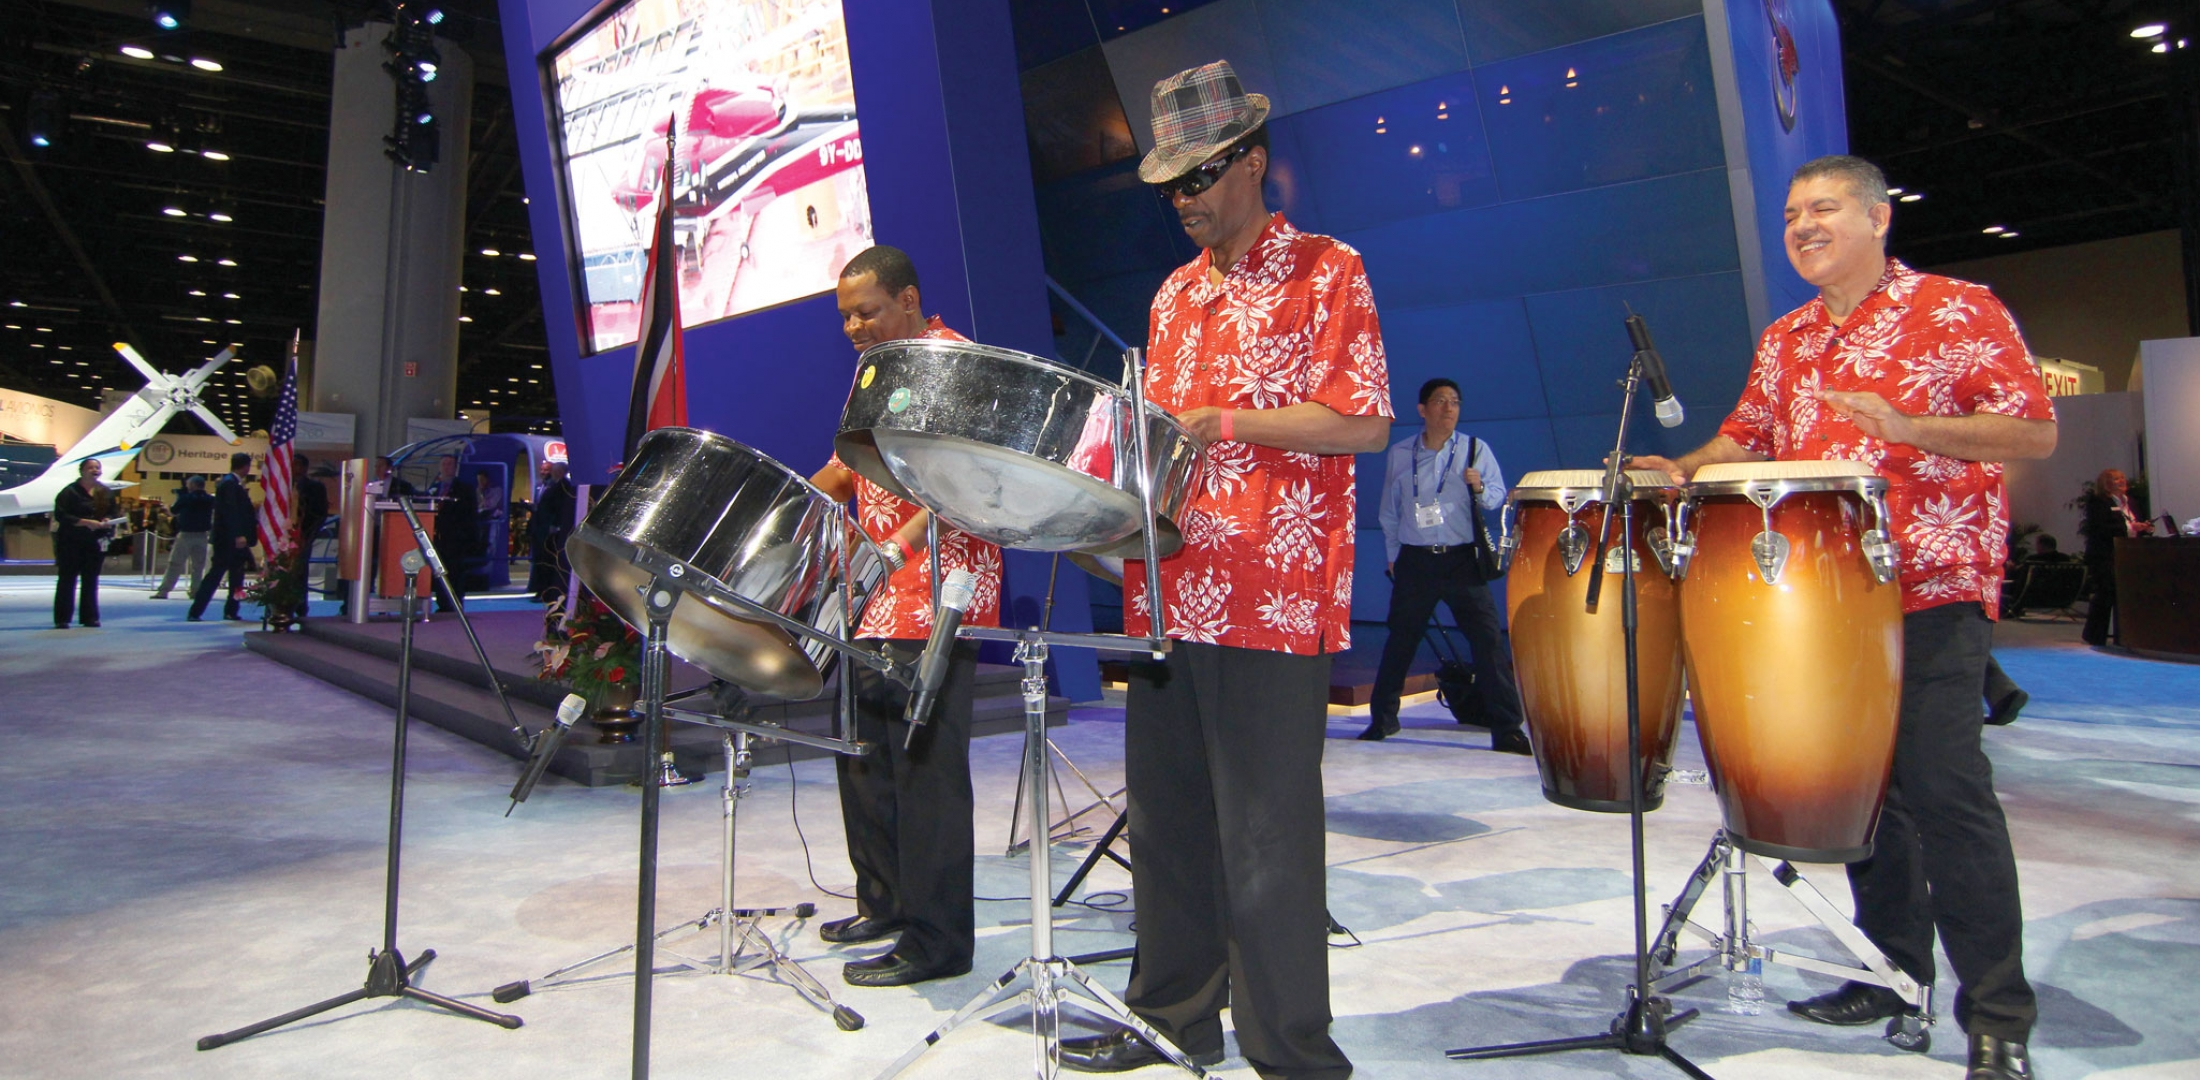 """Even a helicopter show is a """"show"""" and how can you have one without music. The steel-drum band Rhythm Trail performed their percussive sounds, courtesy of Sikorsky Aircraft at its display booth. Photo: Mariano Rosales"""